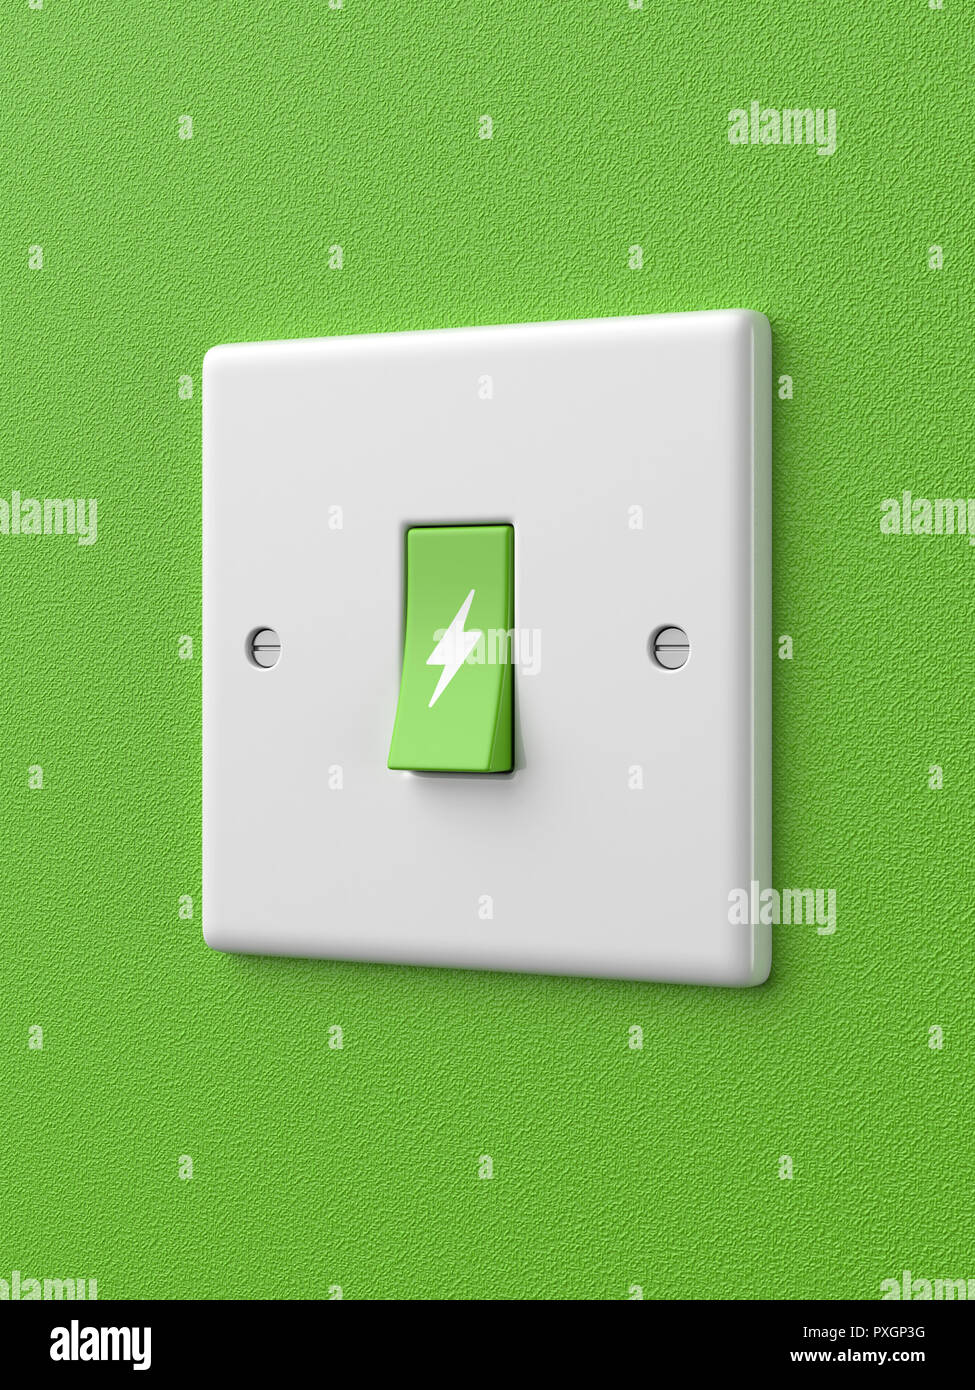 3d rendered angled view of a single green light switch with ... on symbol for headlight, symbol for fuel tank, symbol for faucet, symbol for distributor, symbol for screw, symbol for remote control, symbol for condenser, symbol for button, symbol for cable, symbol for brake, symbol for light resistor, symbol for frame, symbol for grill, symbol for tachometer, symbol for hammer, symbol for fluorescent light, symbol for muffler, symbol for electric outlet, symbol for pilot light, symbol for wall light,